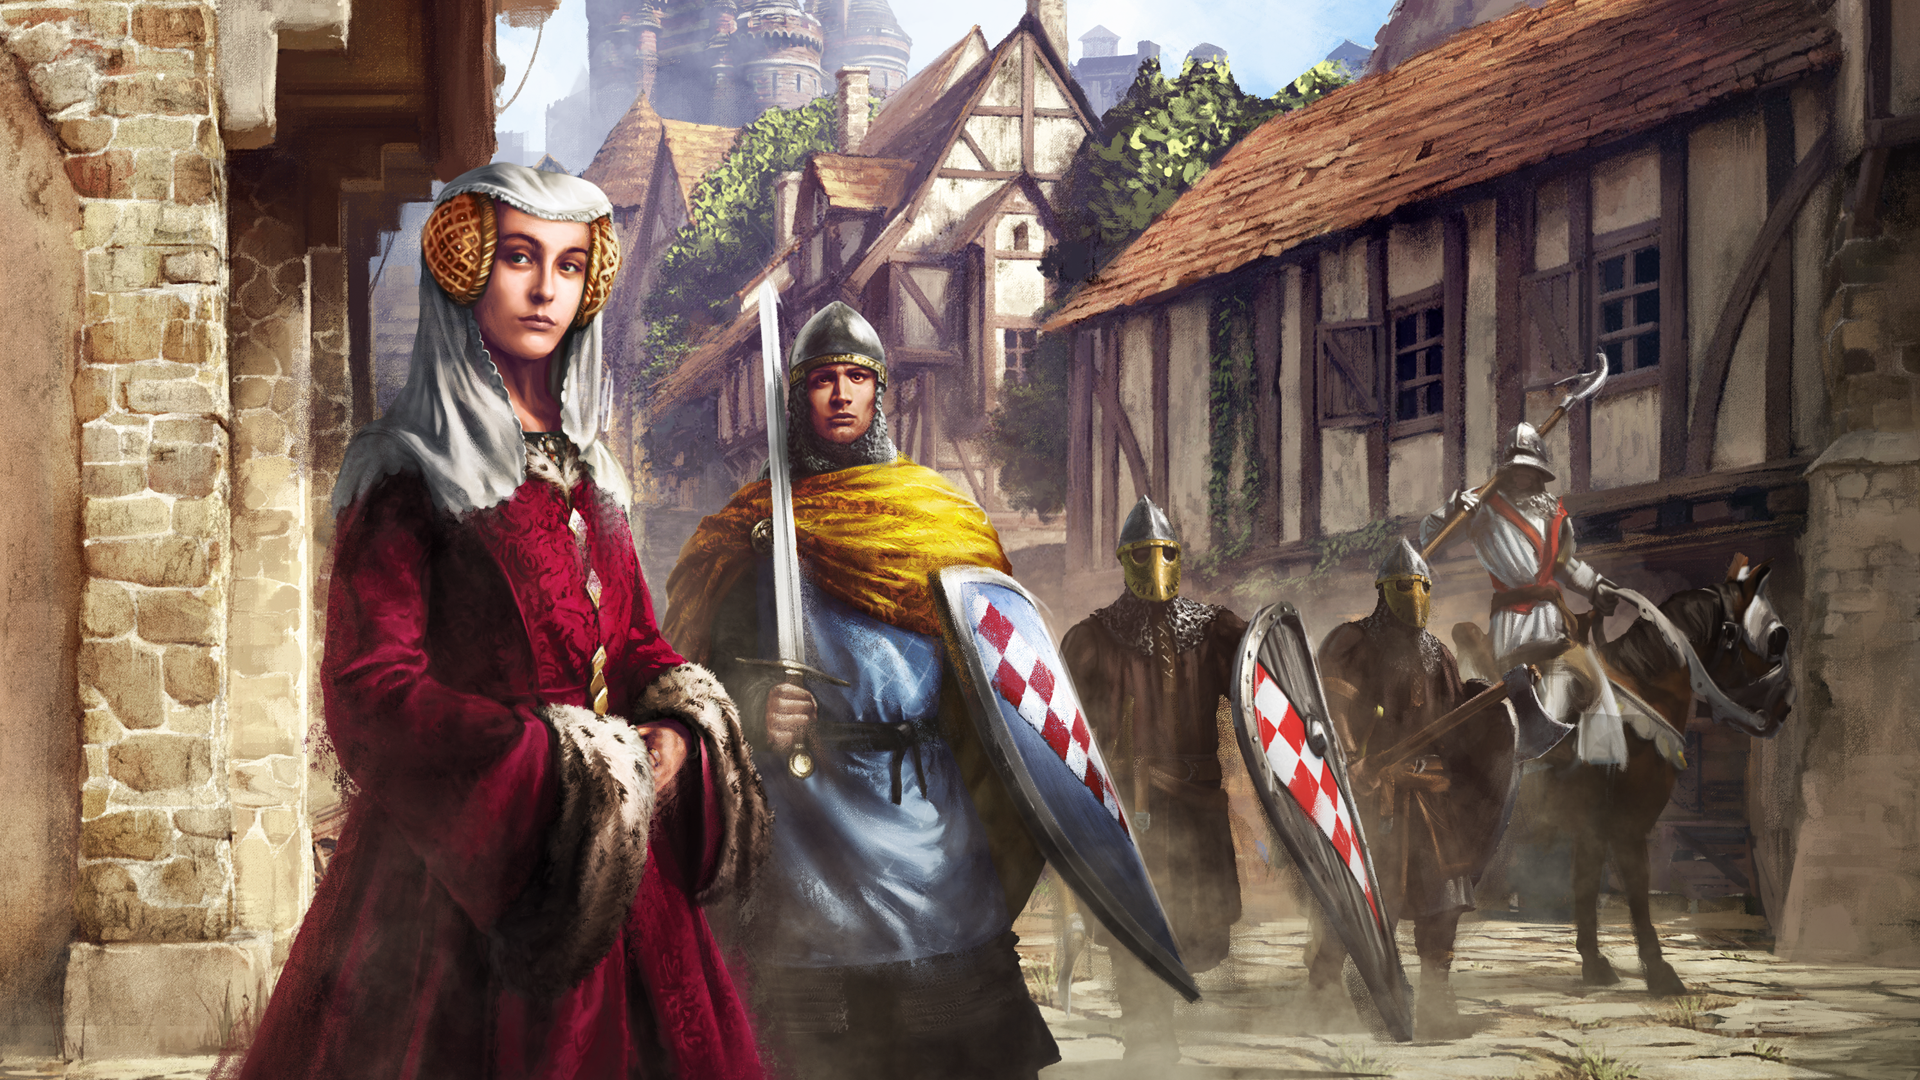 Age of Empires II Lords of the West background art featuring a noble woman and several knights in a medieval village